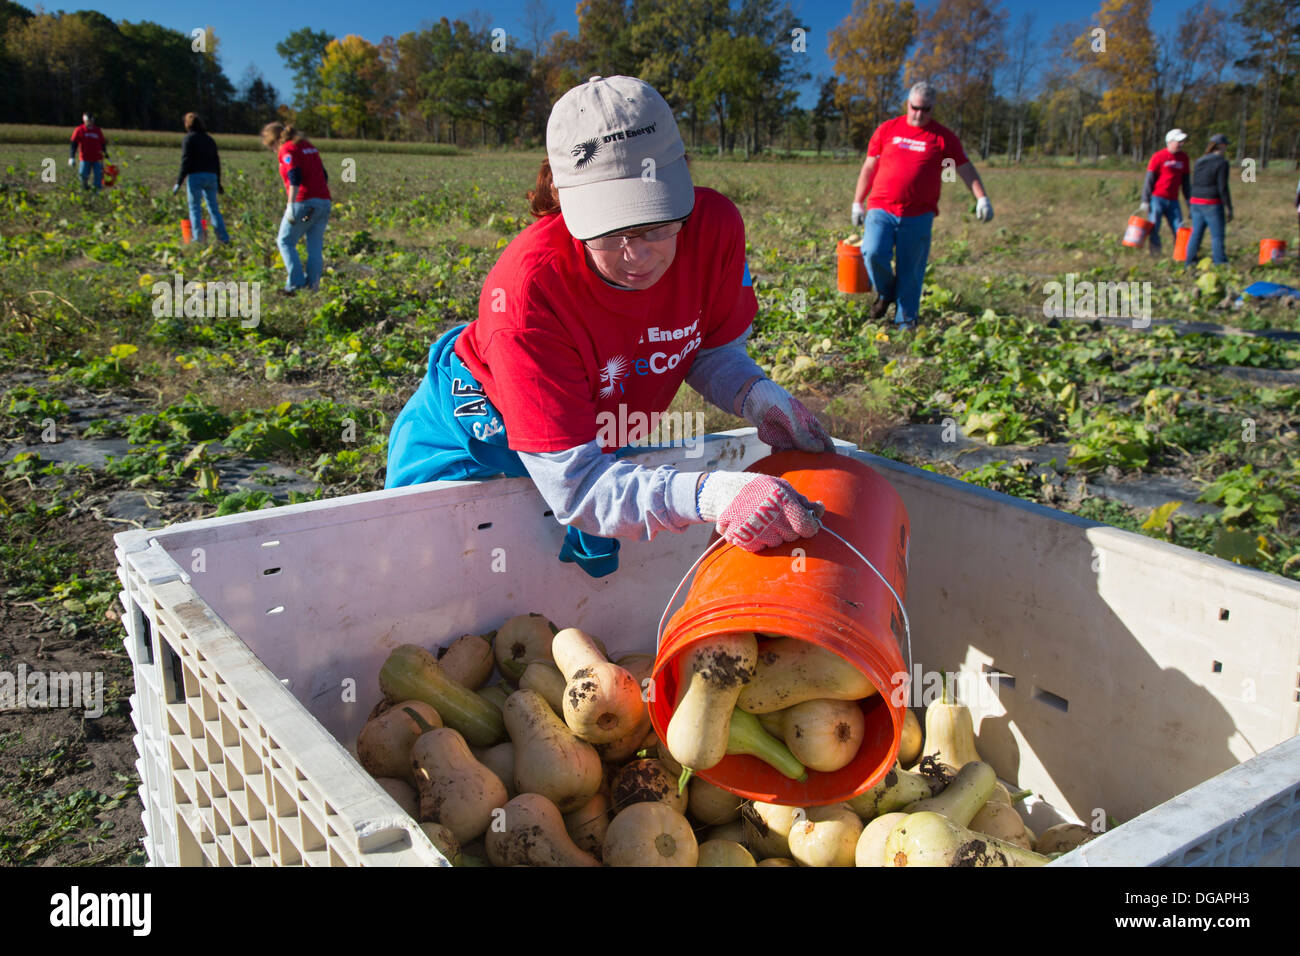 Volunteer harvest squash for distribution to food banks and soup kitchens in Michigan. - Stock Image